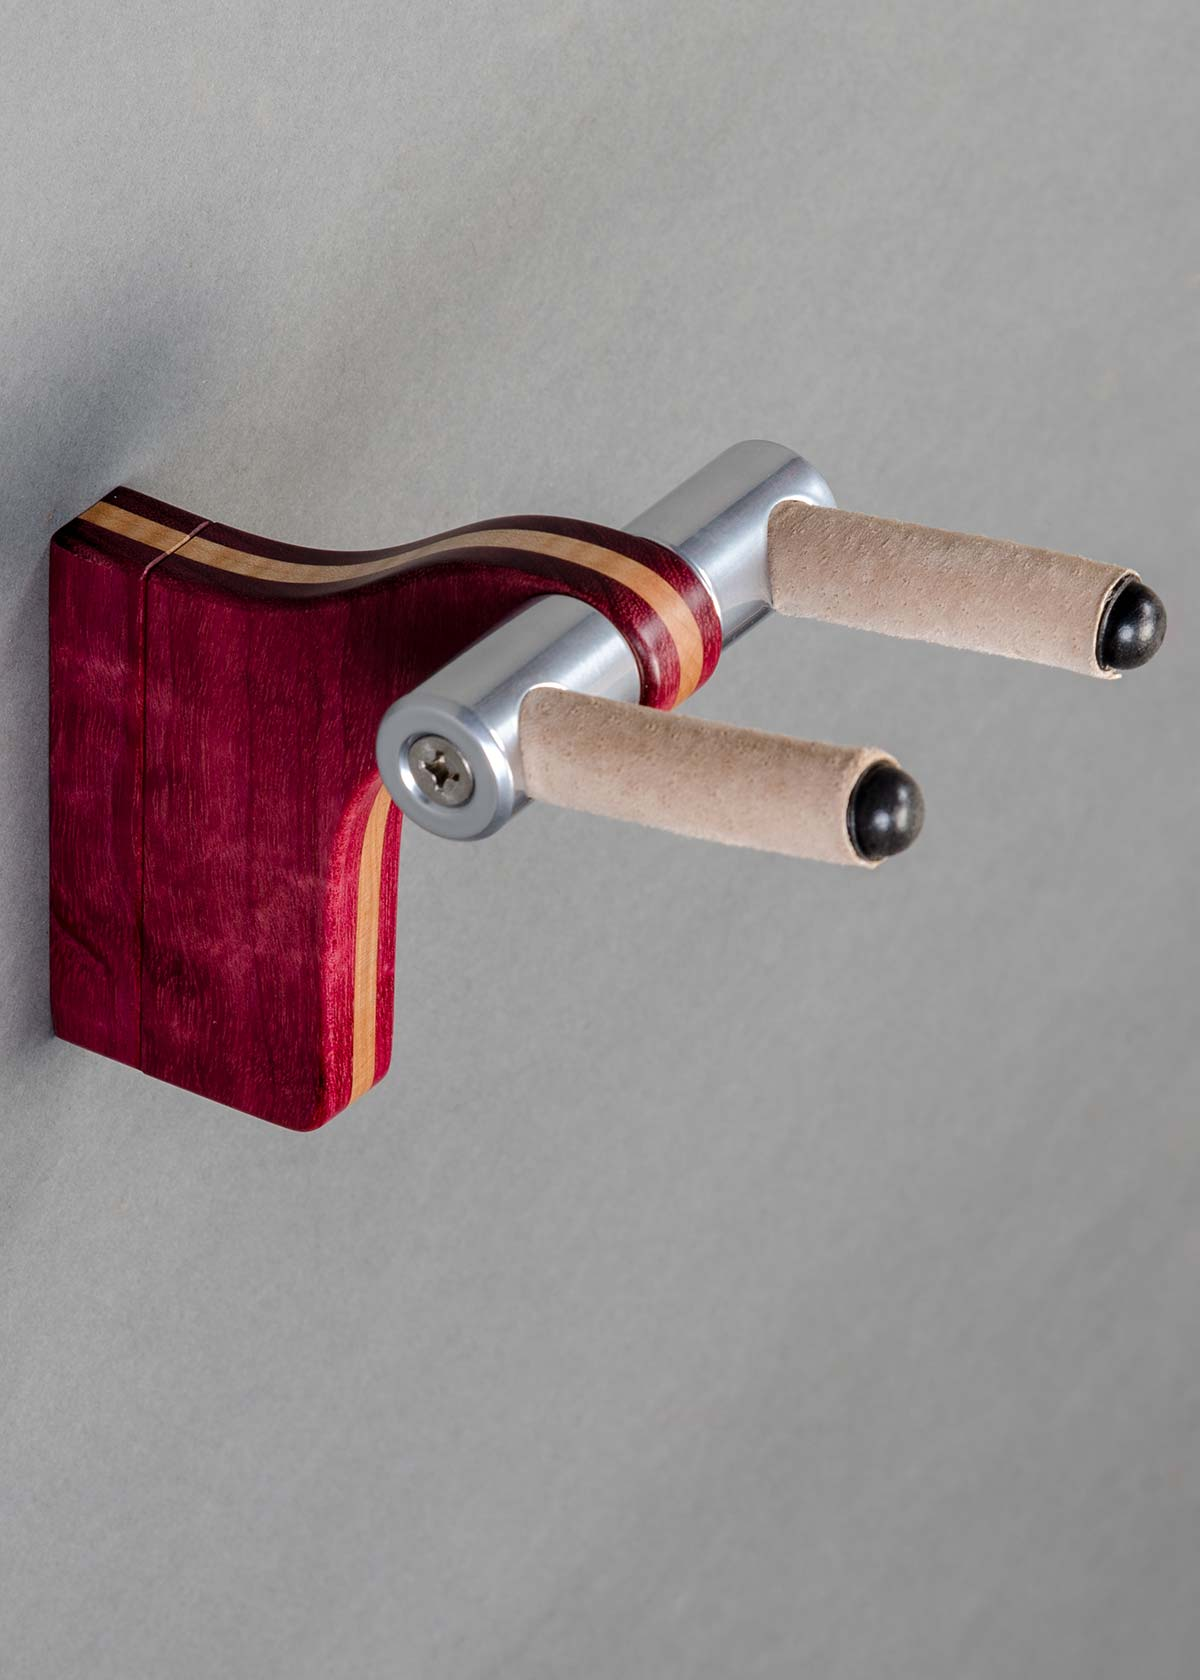 WM Guitar Stand in Curly Maple with Bubinga Binding